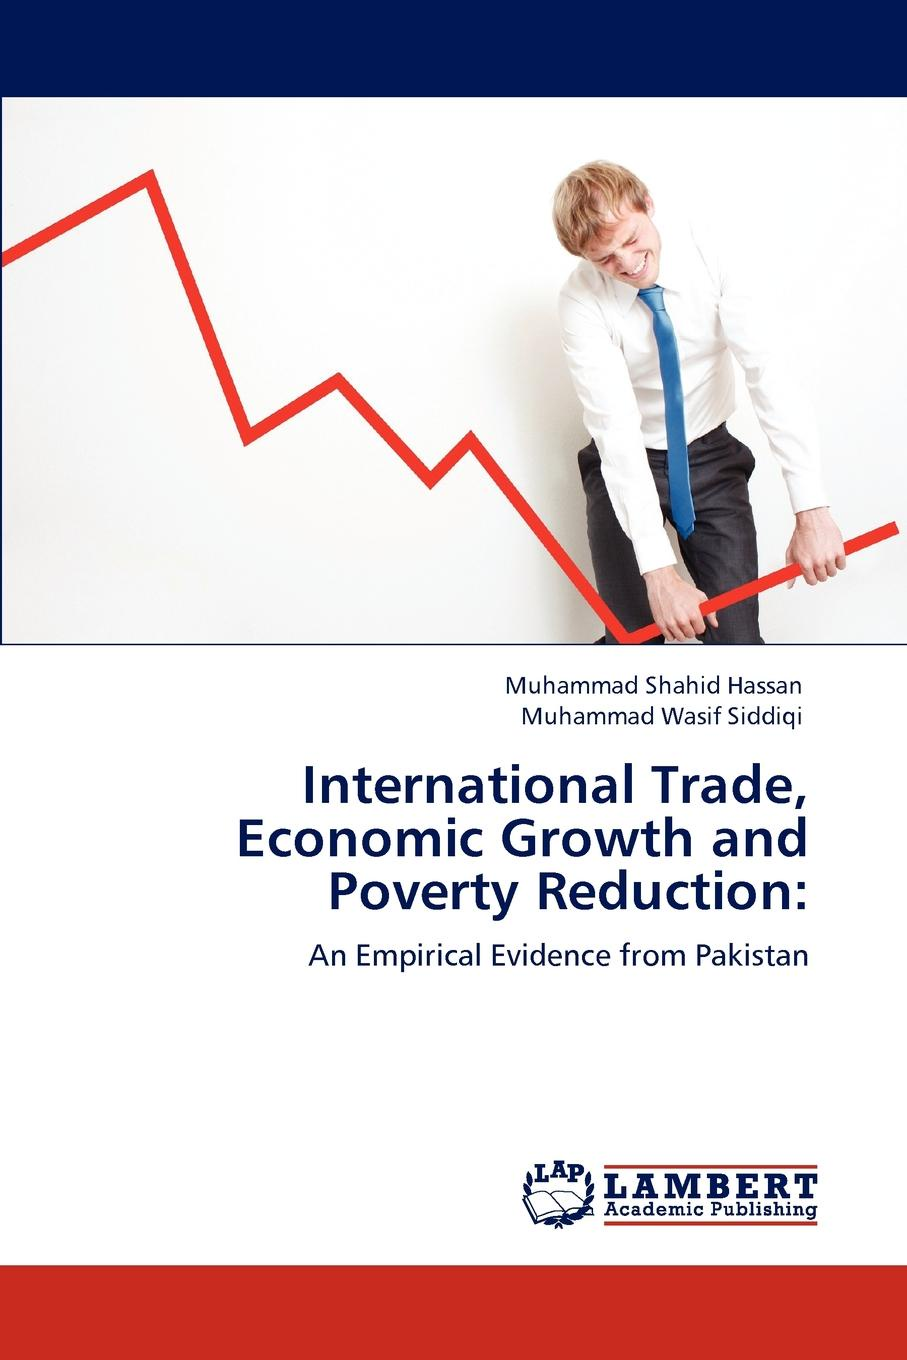 Muhammad Shahid Hassan, Muhammad Wasif Siddiqi International Trade, Economic Growth and Poverty Reduction vishaal kishore ricardo s gauntlet economic fiction and the flawed case for free trade